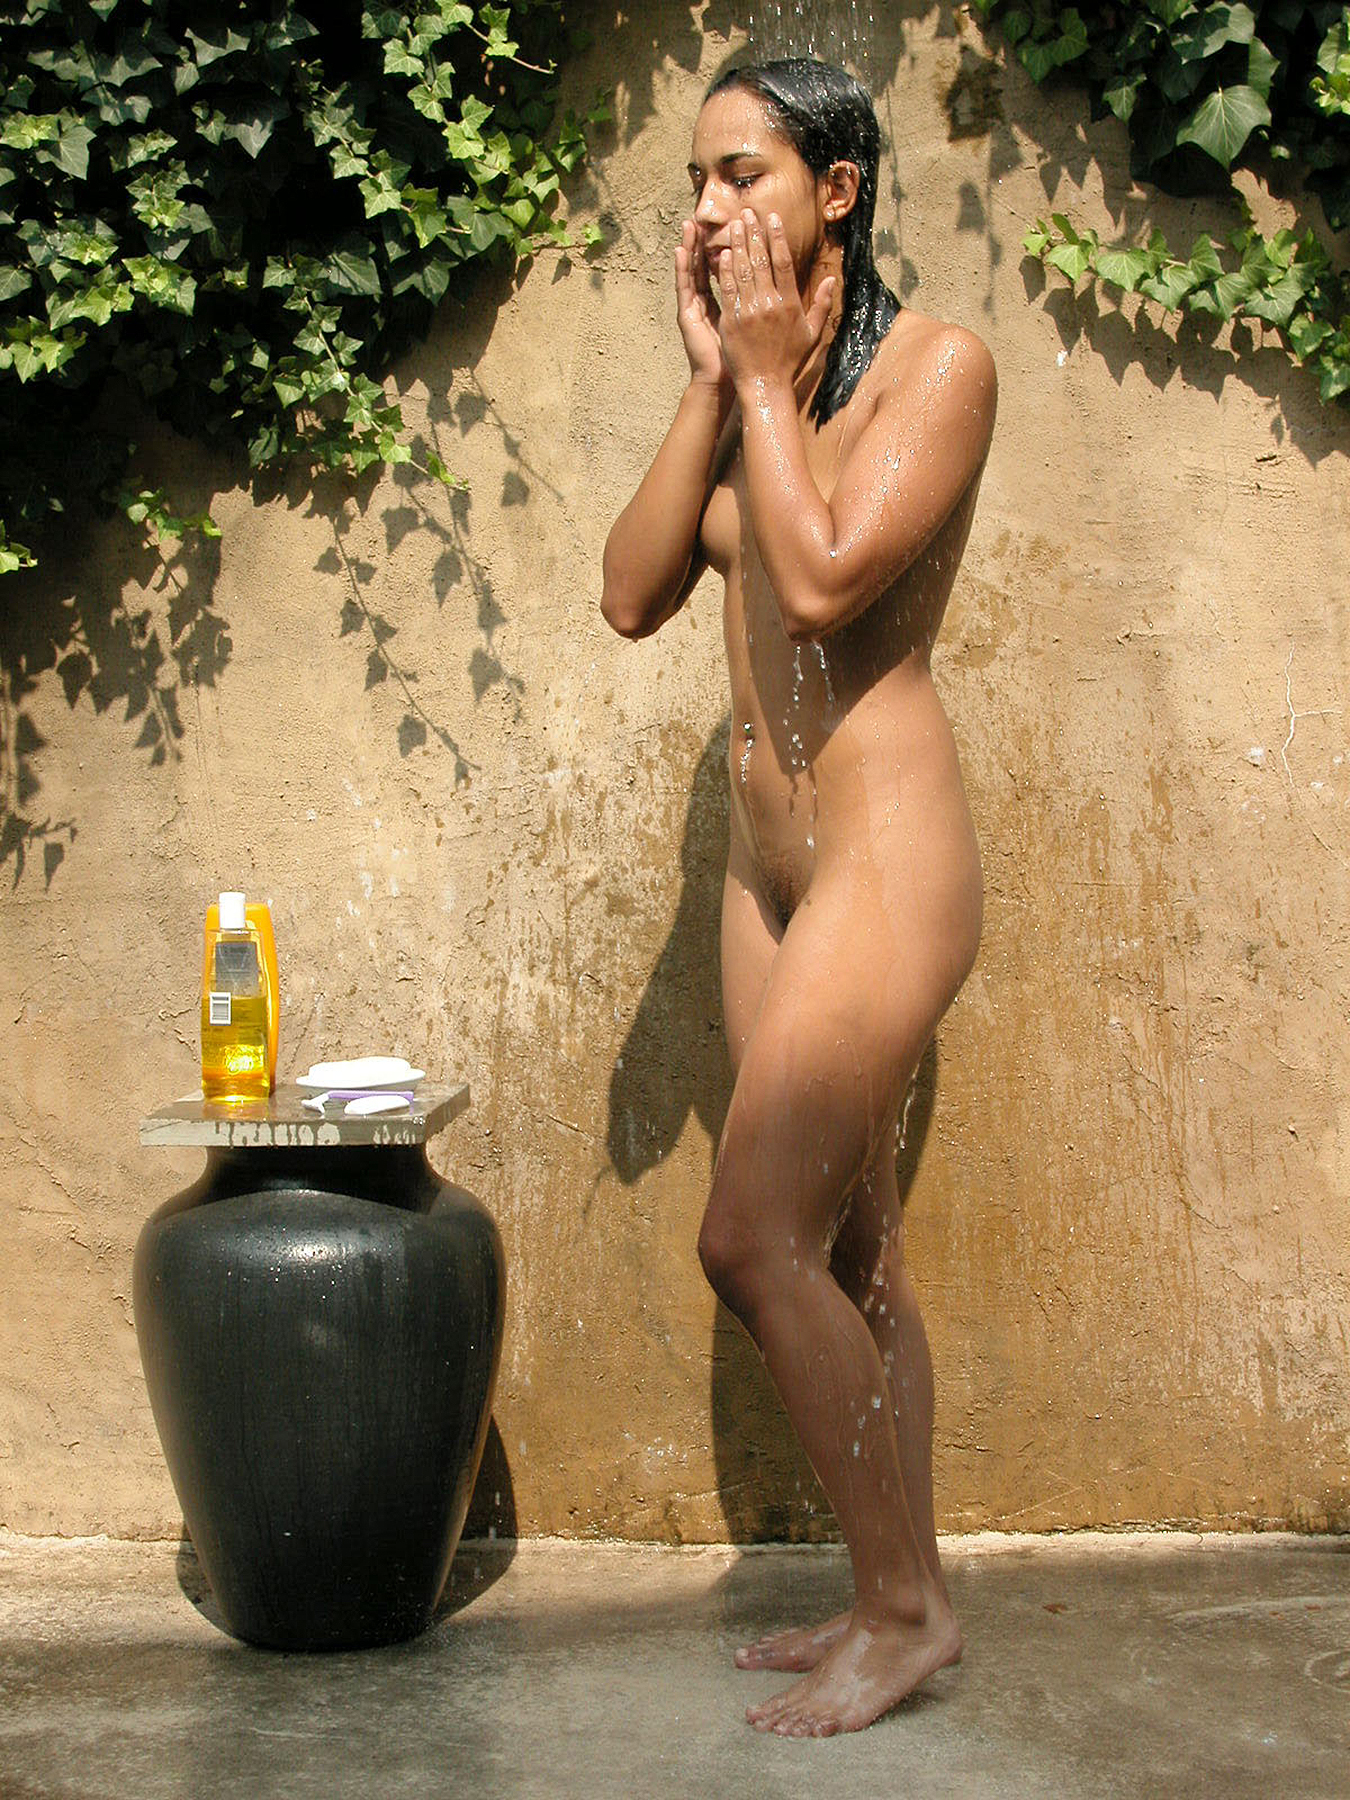 Hannah_frontal_nude_eyes_closed_dreamy_August_2003_bathing_outdoors_water